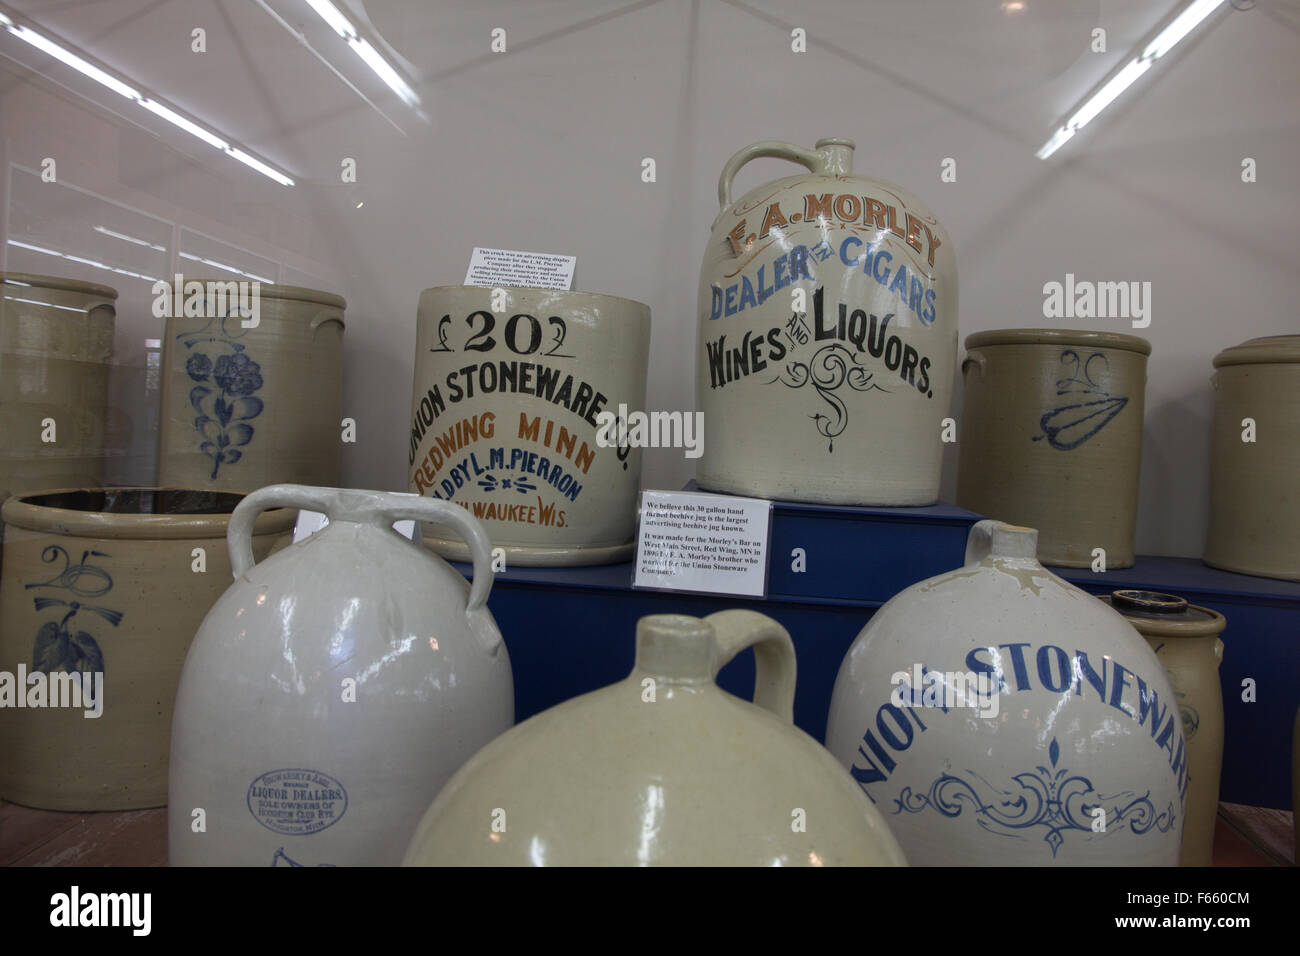 These vintage stoneware jugs are among nearly 6,000 items on display at the Pottery Museum of Red Wing in Red Wing. - Stock Image